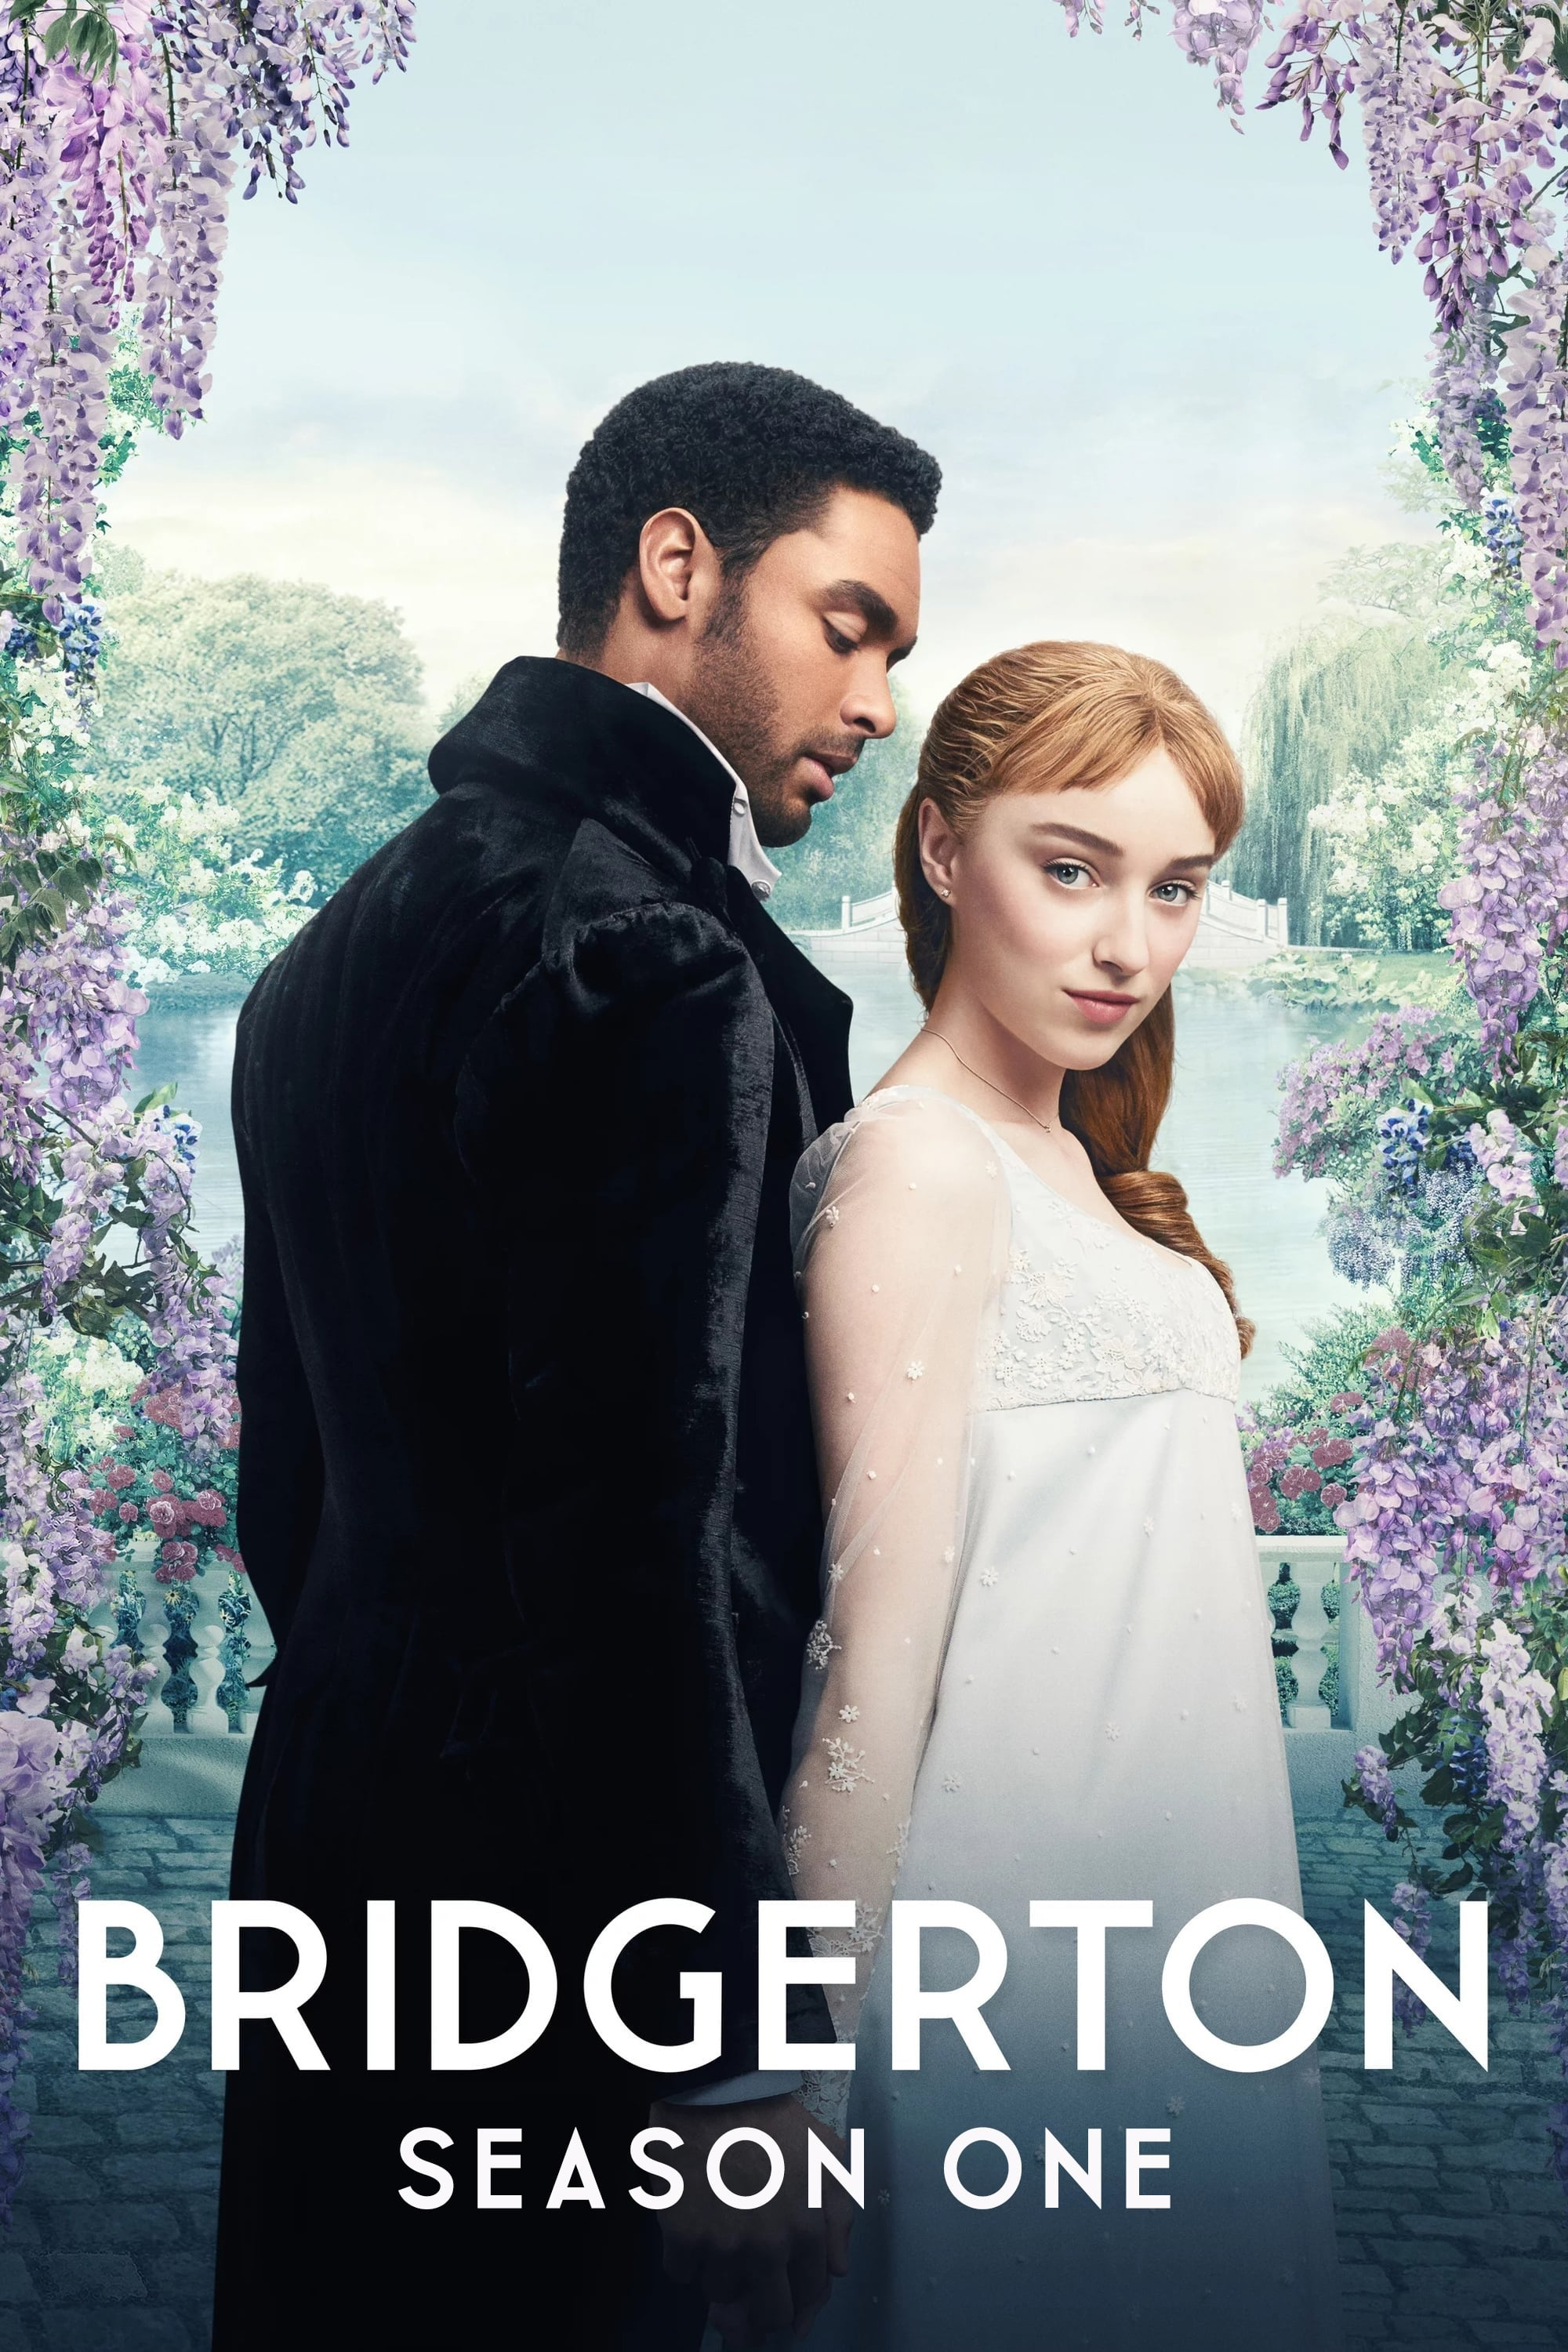 Bridgerton Season 1